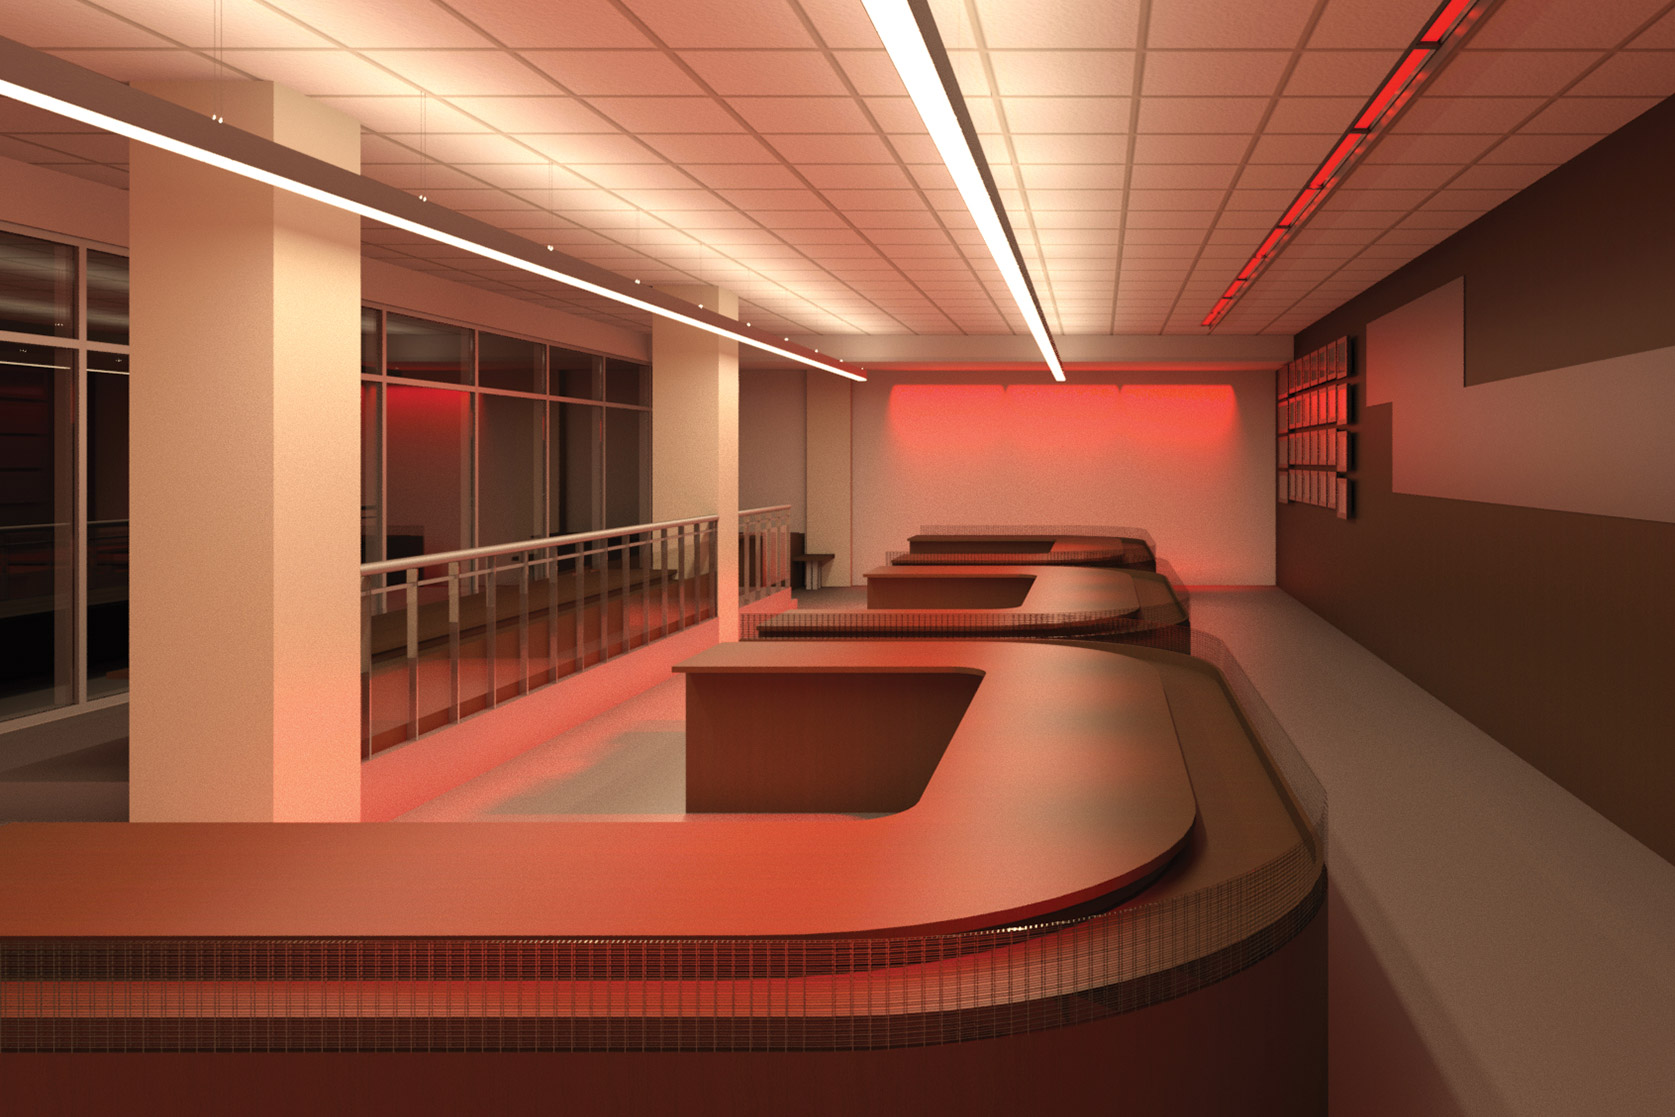 Technology Rethinking Exposure to Saturated Colored Light